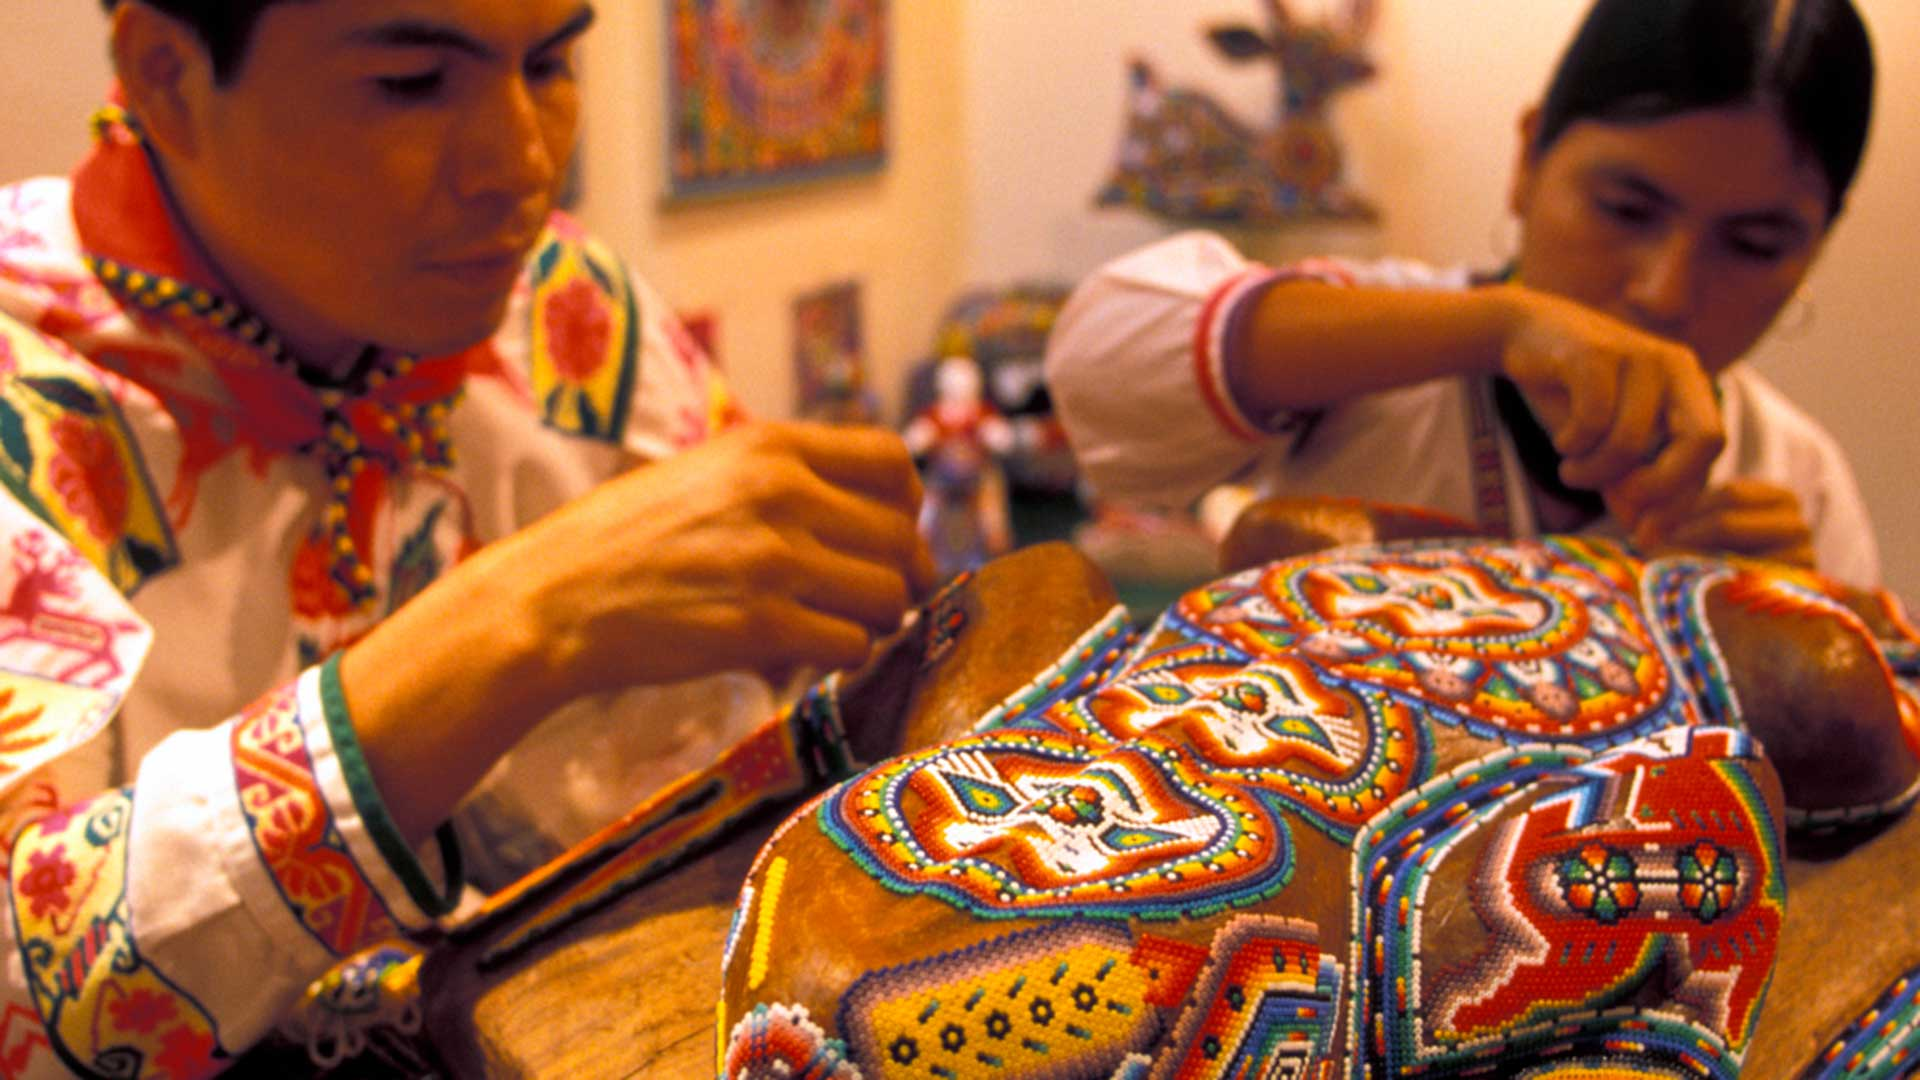 Huichol Indian Crafts Artisans and beadwork in Baja, Mexico